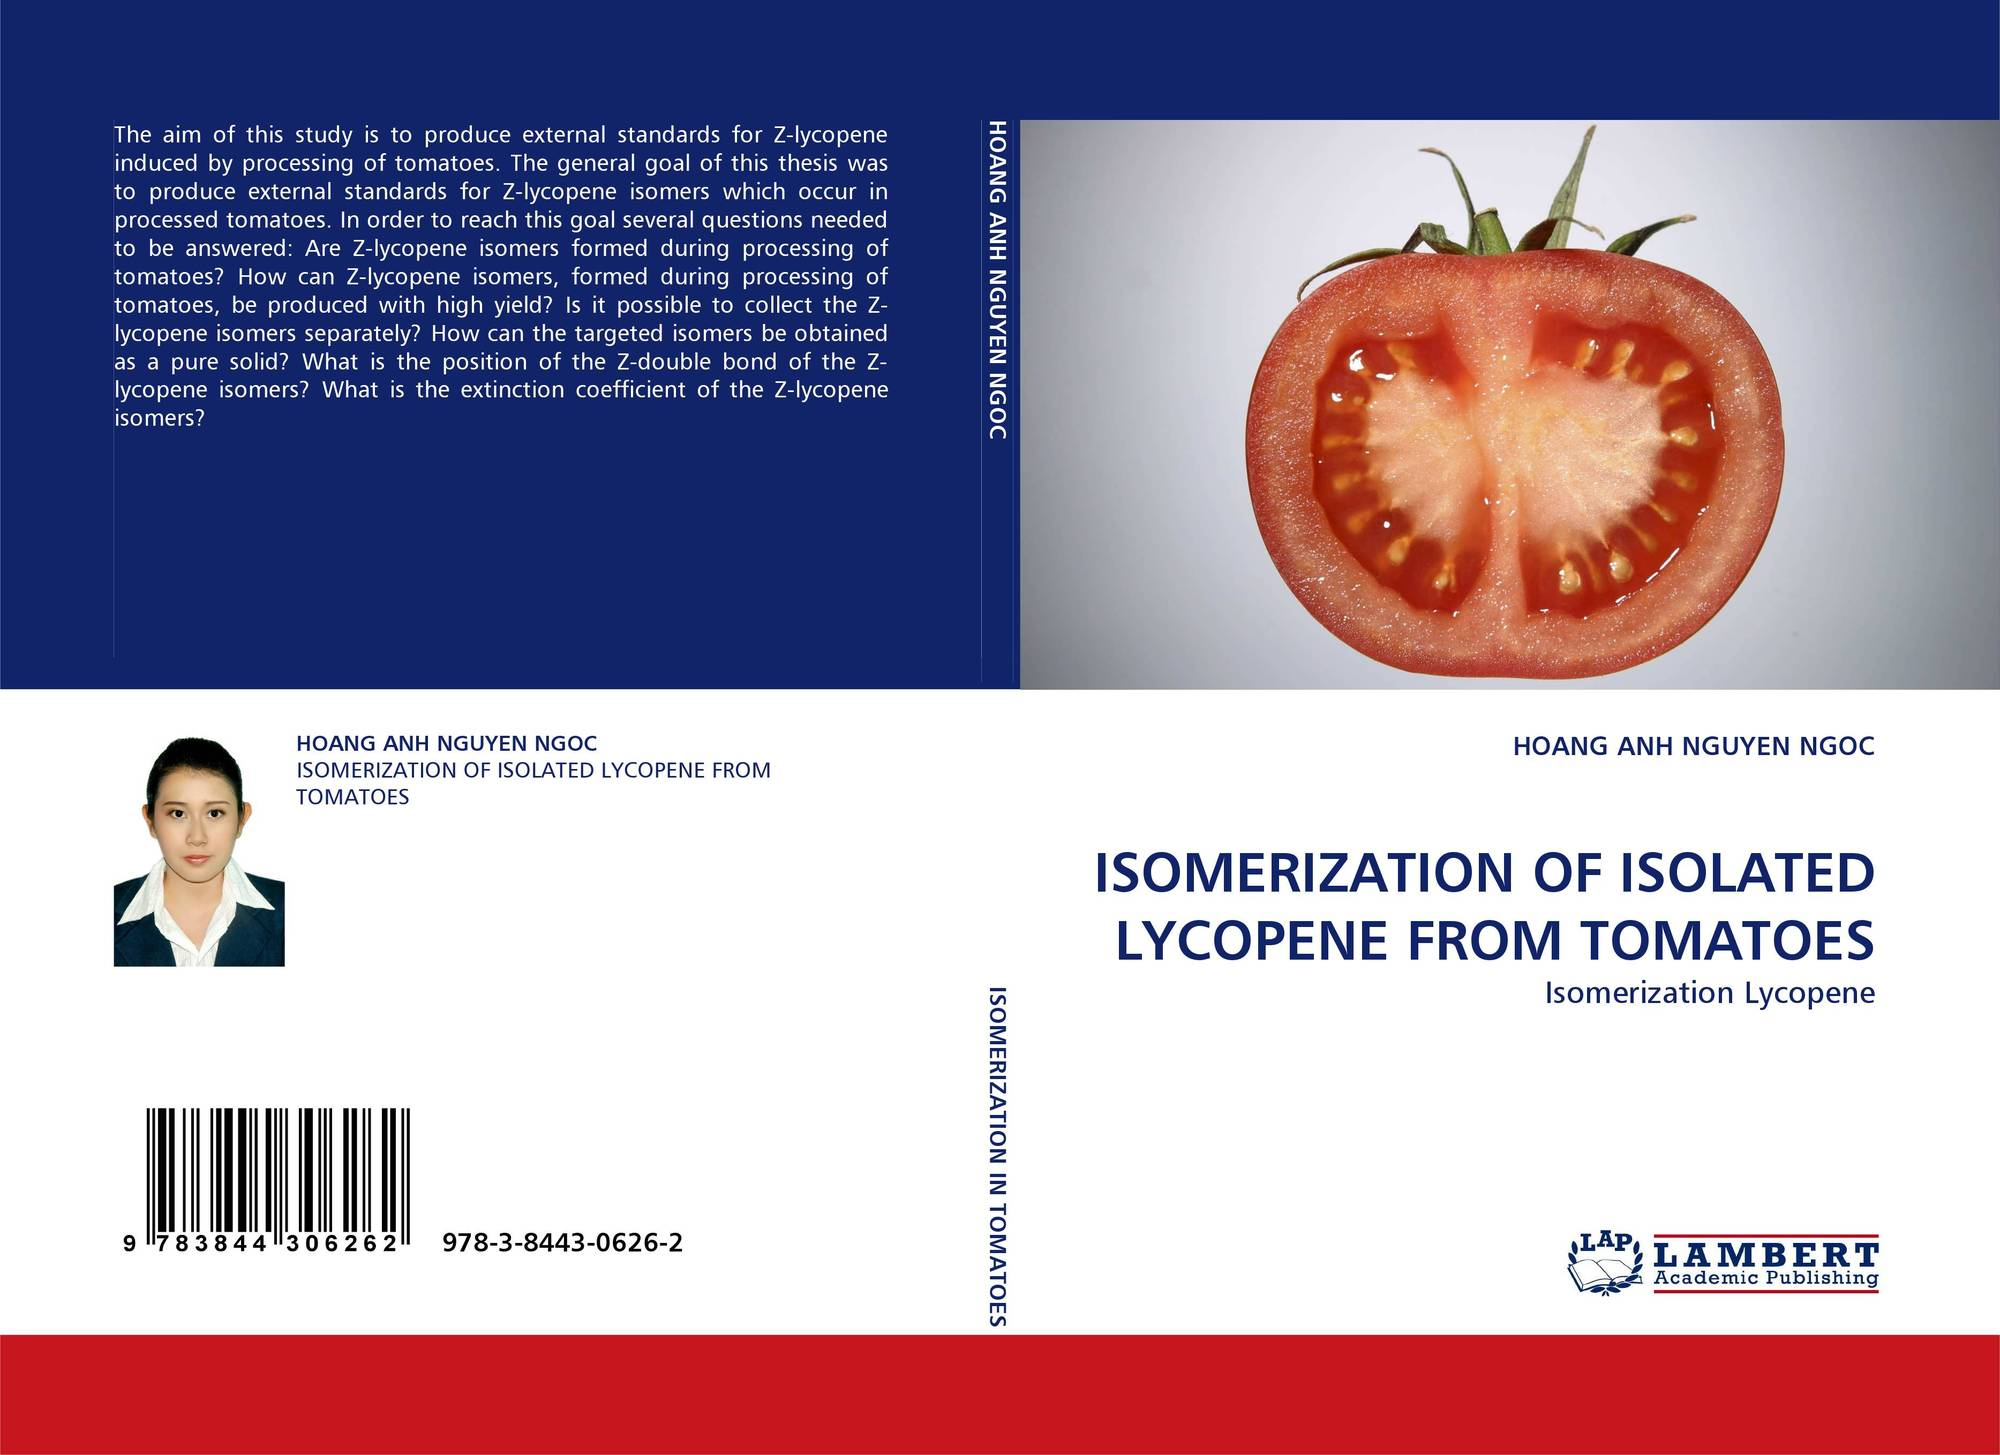 isolation and isomerization of lycopene from Lycopene undergo degradation via isomerization and oxidation under different heating exposures but at the same time, heating can enhance the extractability of lycopene from the tomato matrix light as discussed previously heat and light are the two major factors which highly affect the food quality in processing and material handling procedure.